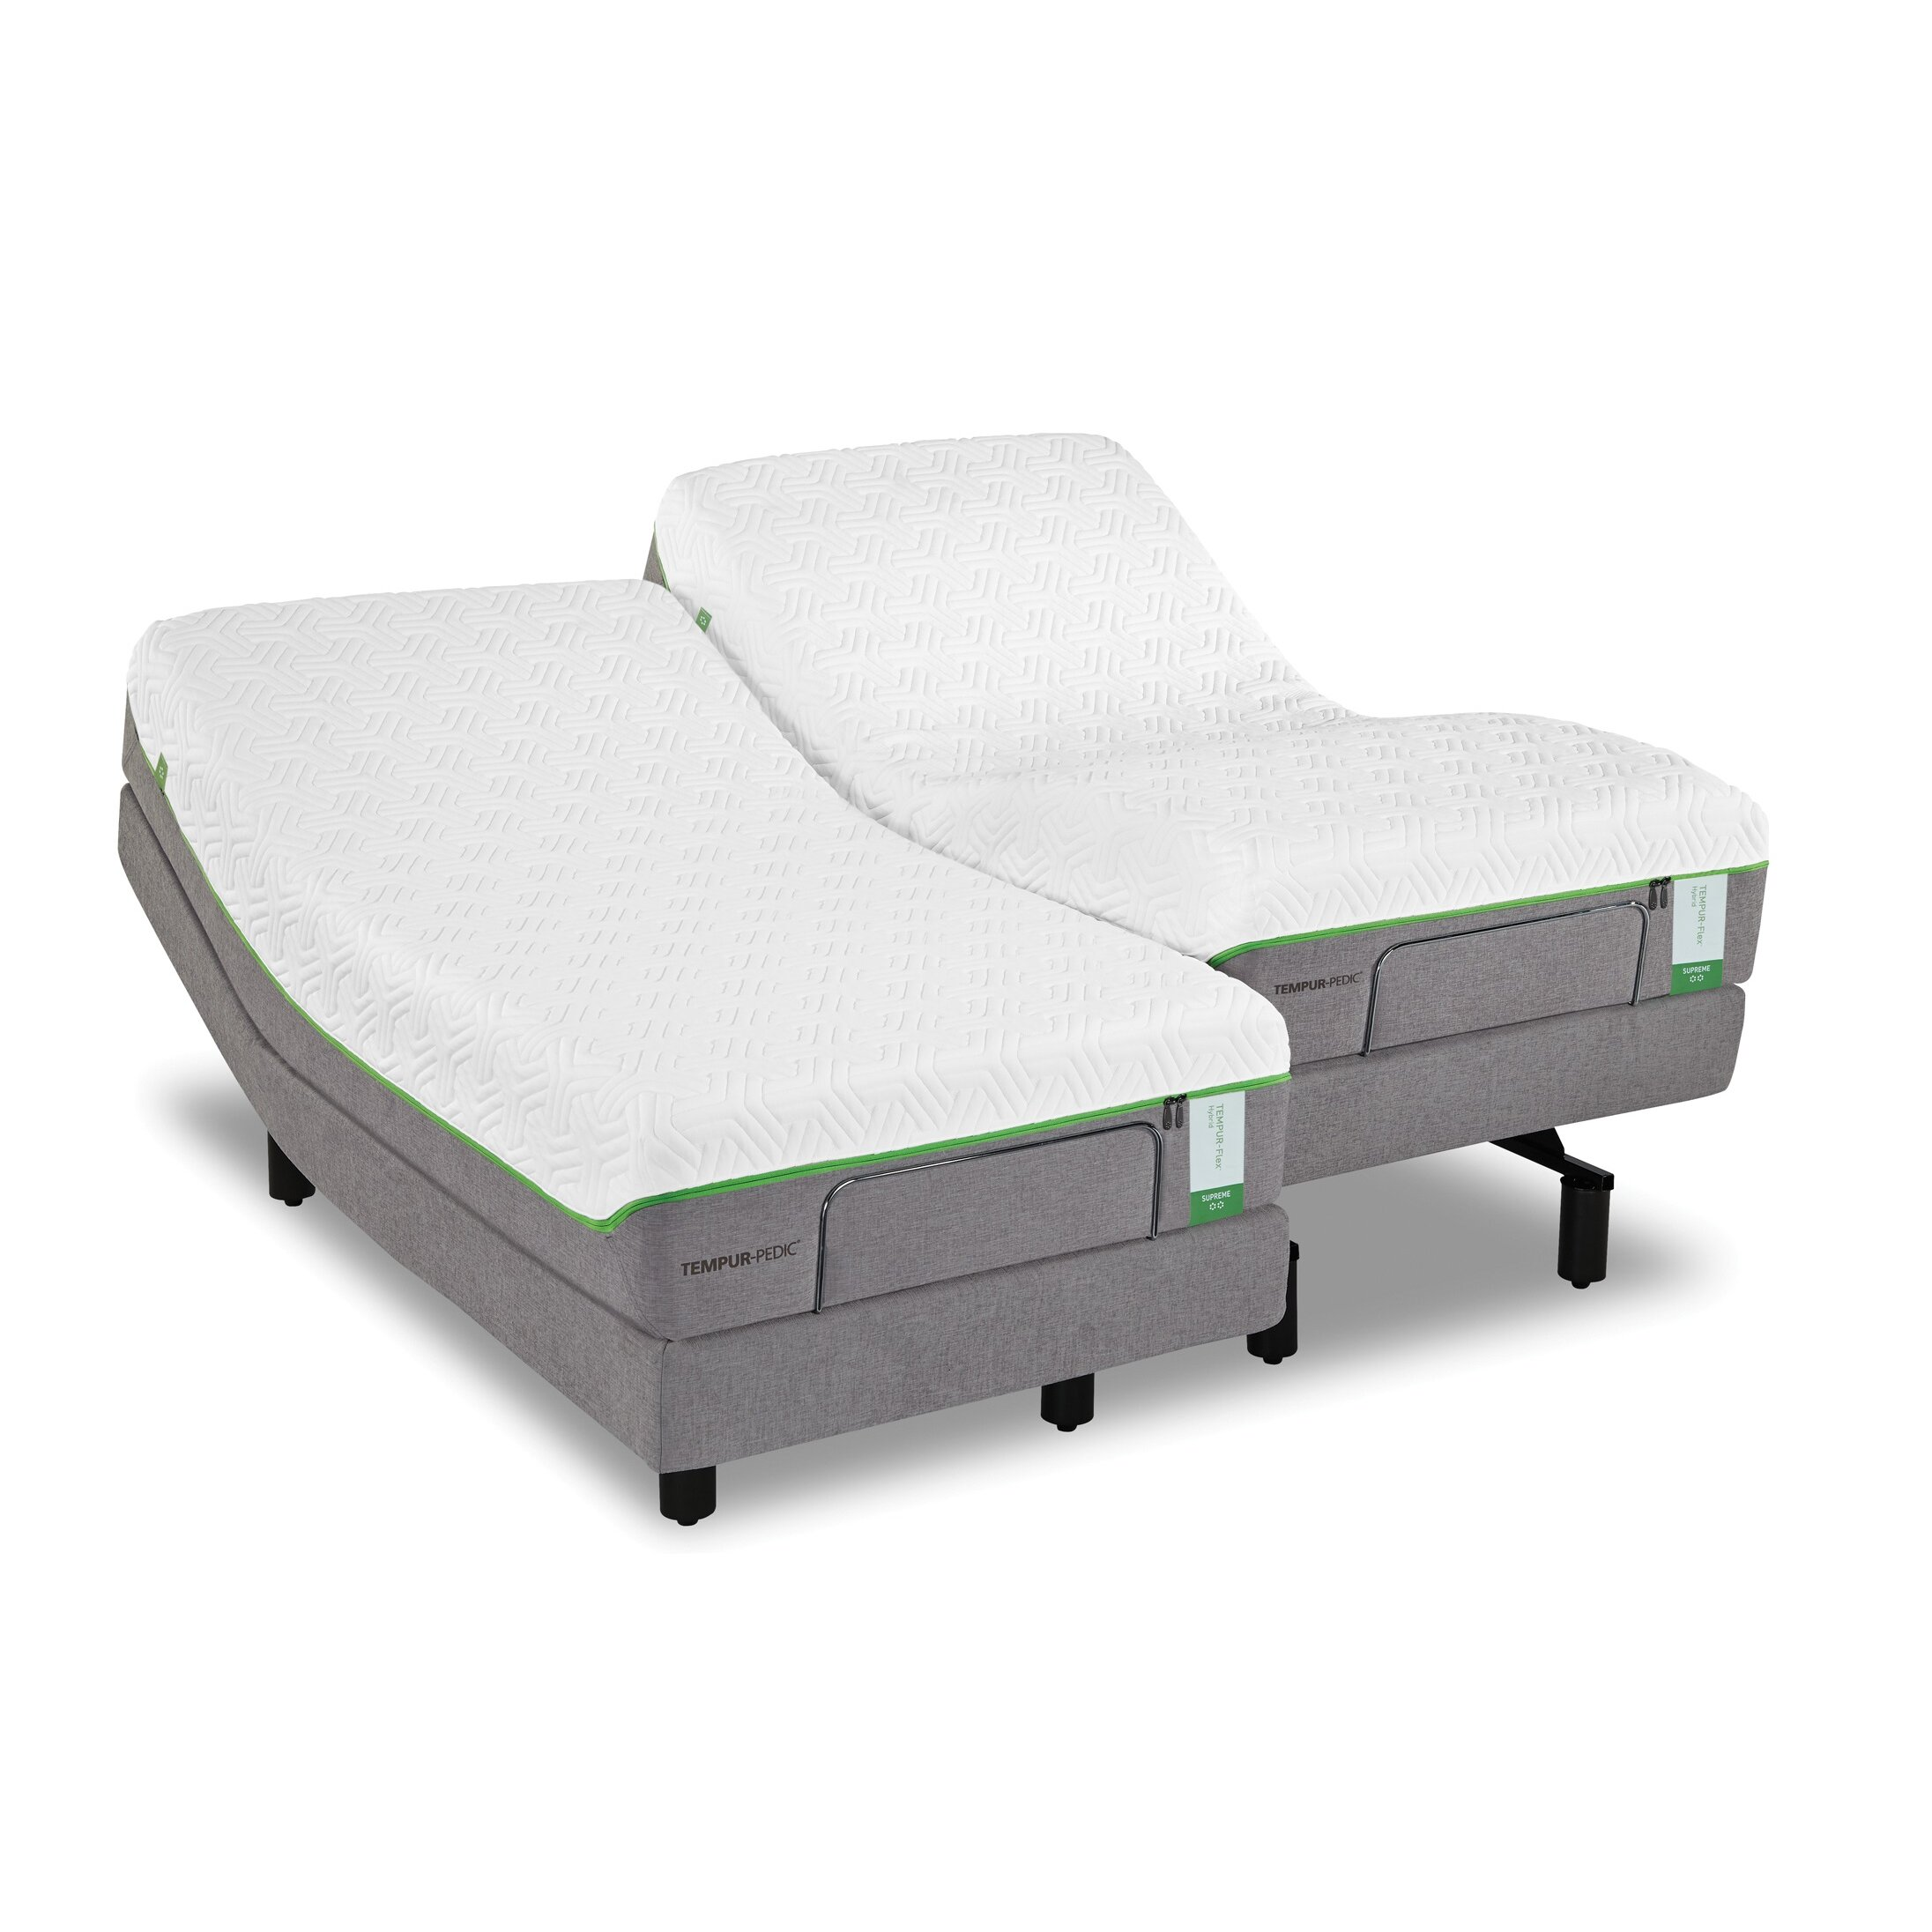 TEMPUR-Pedic Mattresses. If you're in the market for a new mattress, consider this question. Is it time for to simply replace the mattress you have or is time for an upgrade? Remember, you spend about a third of your life in bed, so buying a new mattress is an opportunity to .